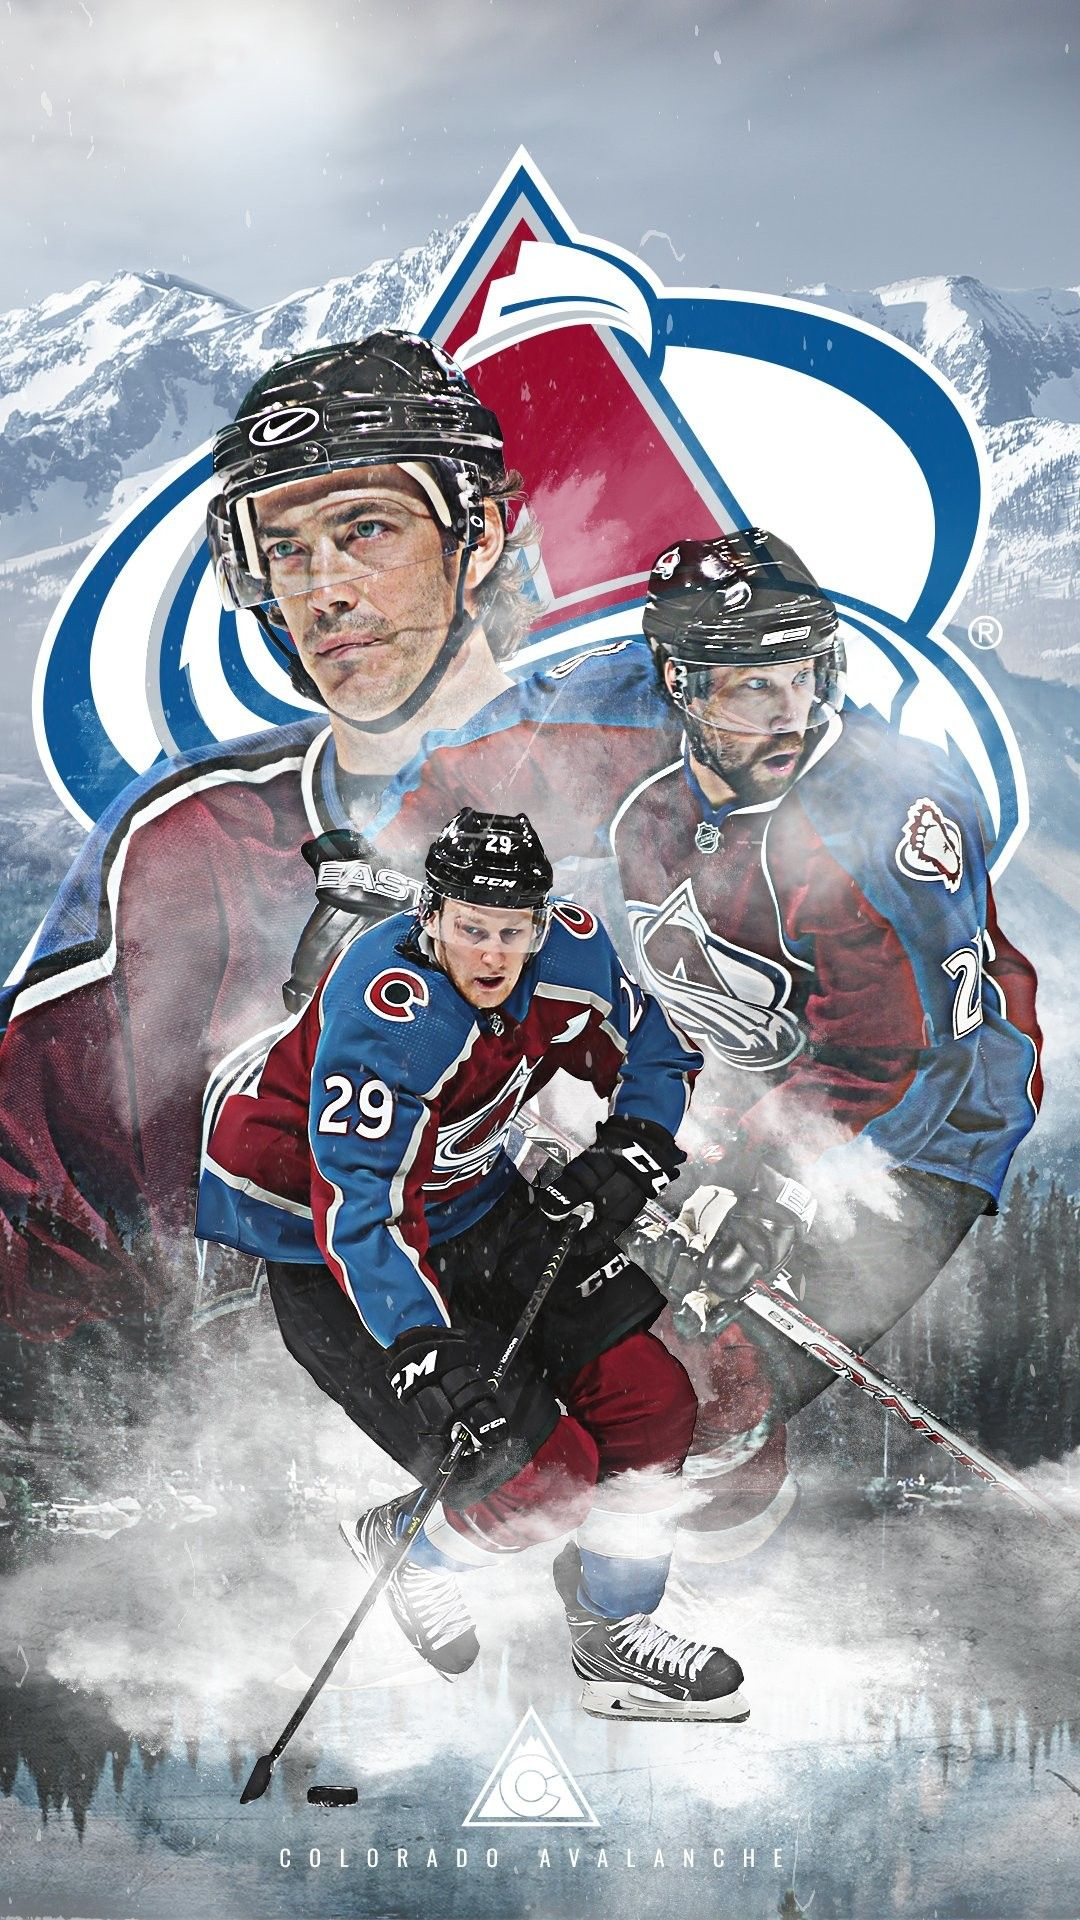 Pin By Elaine Lutty On Hockey Players Are The Best Nhl Wallpaper Ice Hockey Teams Hockey Fans